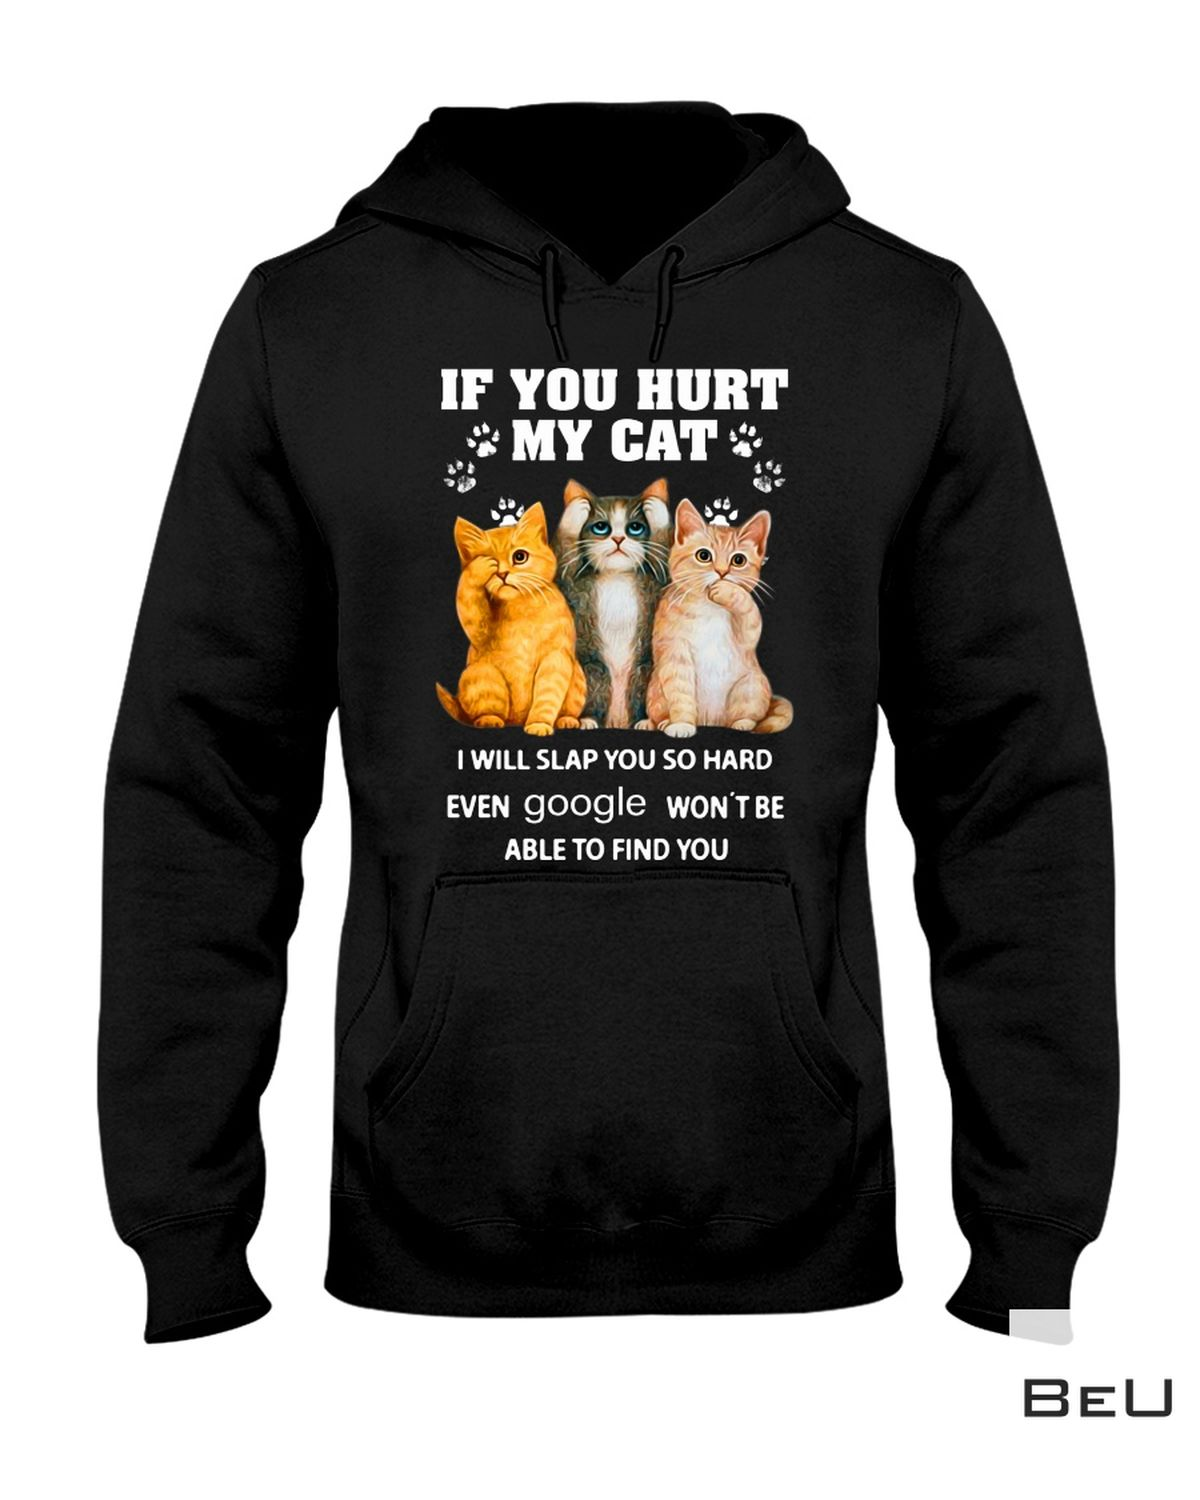 Real If You Hurt My Cat I Will Slap You So Hard Lovely Cats Shirt, hoodie, tank top